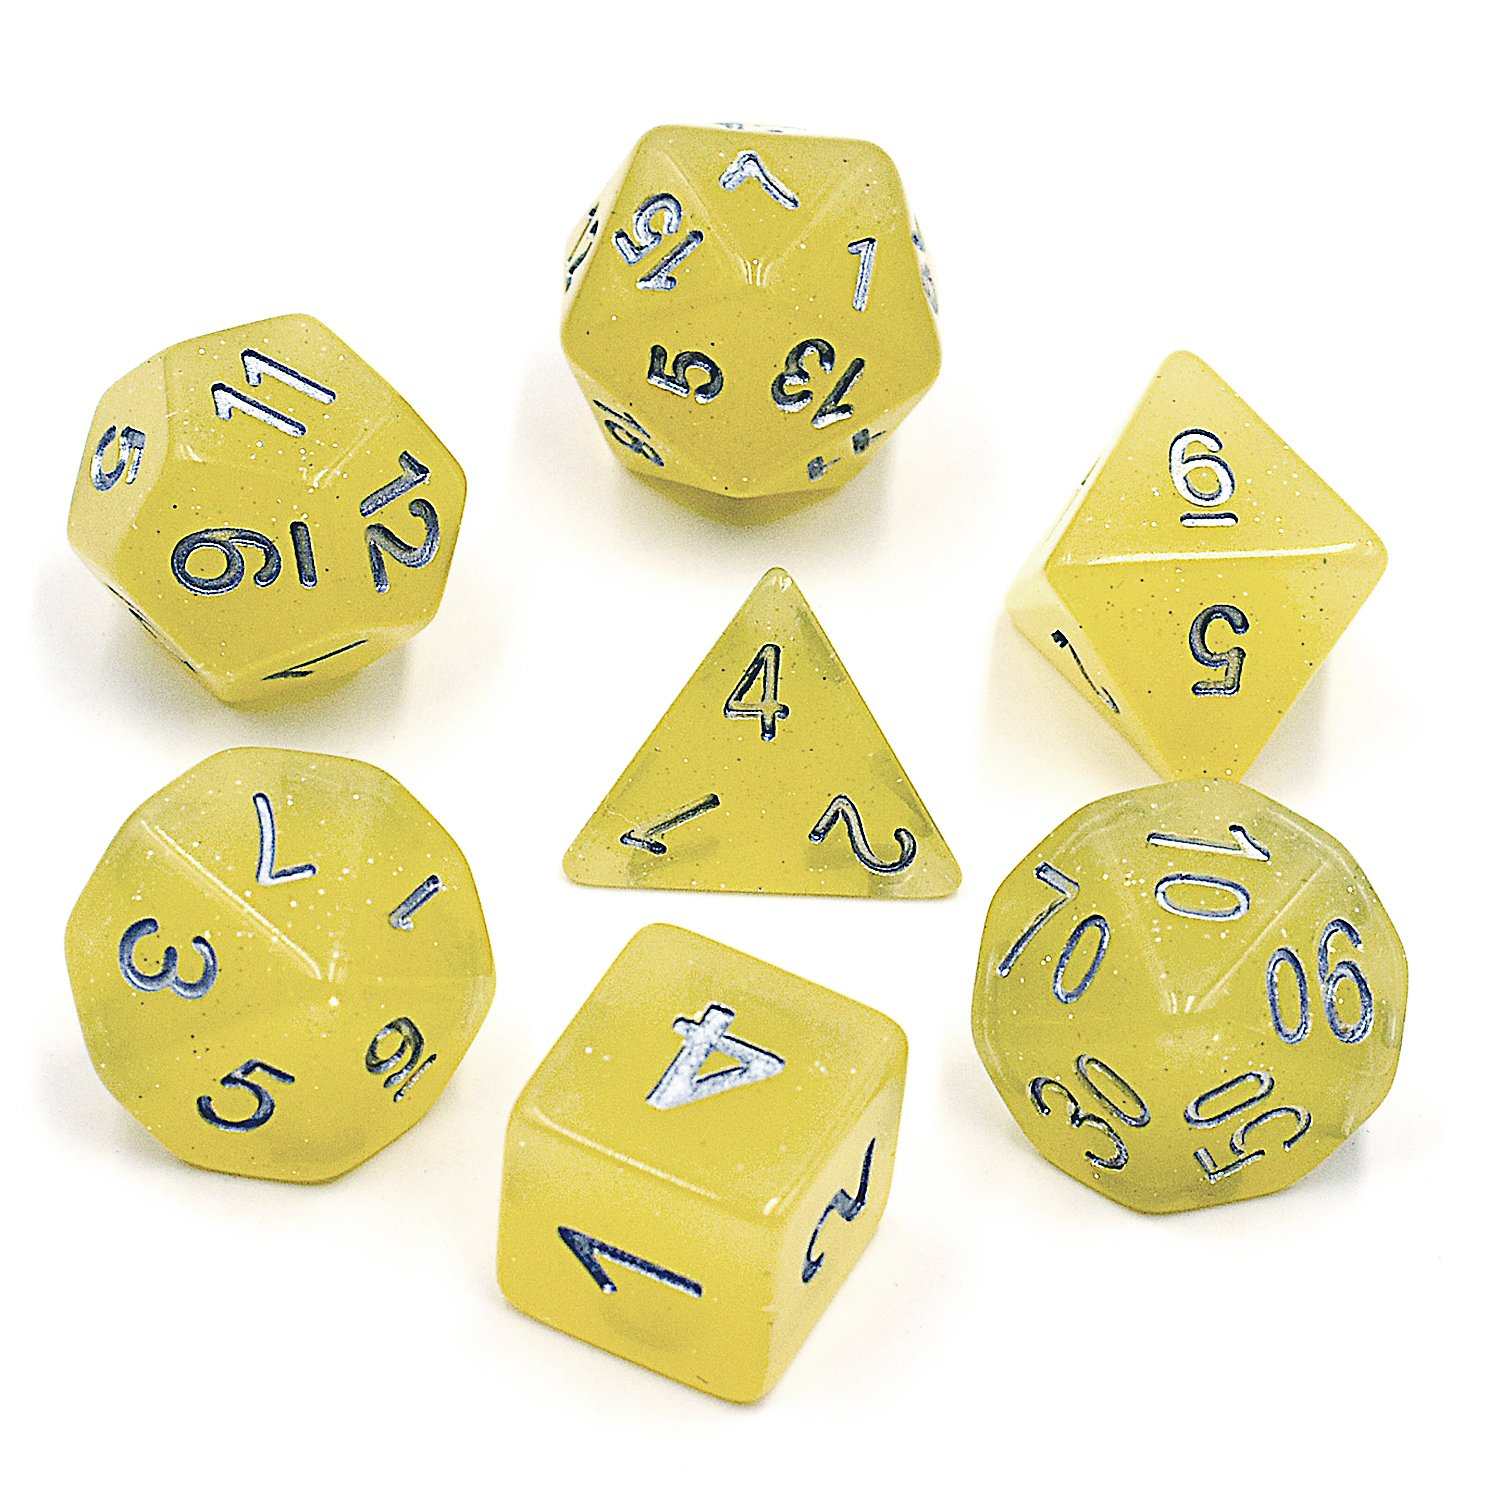 (Yellow) - HD DICE Polyhedral 7-Die Dice Set Dnd Dice Purple Galaxy Dice for Dungeons and Dragons with Purple Pouch  イエロー B07FVFTVXL